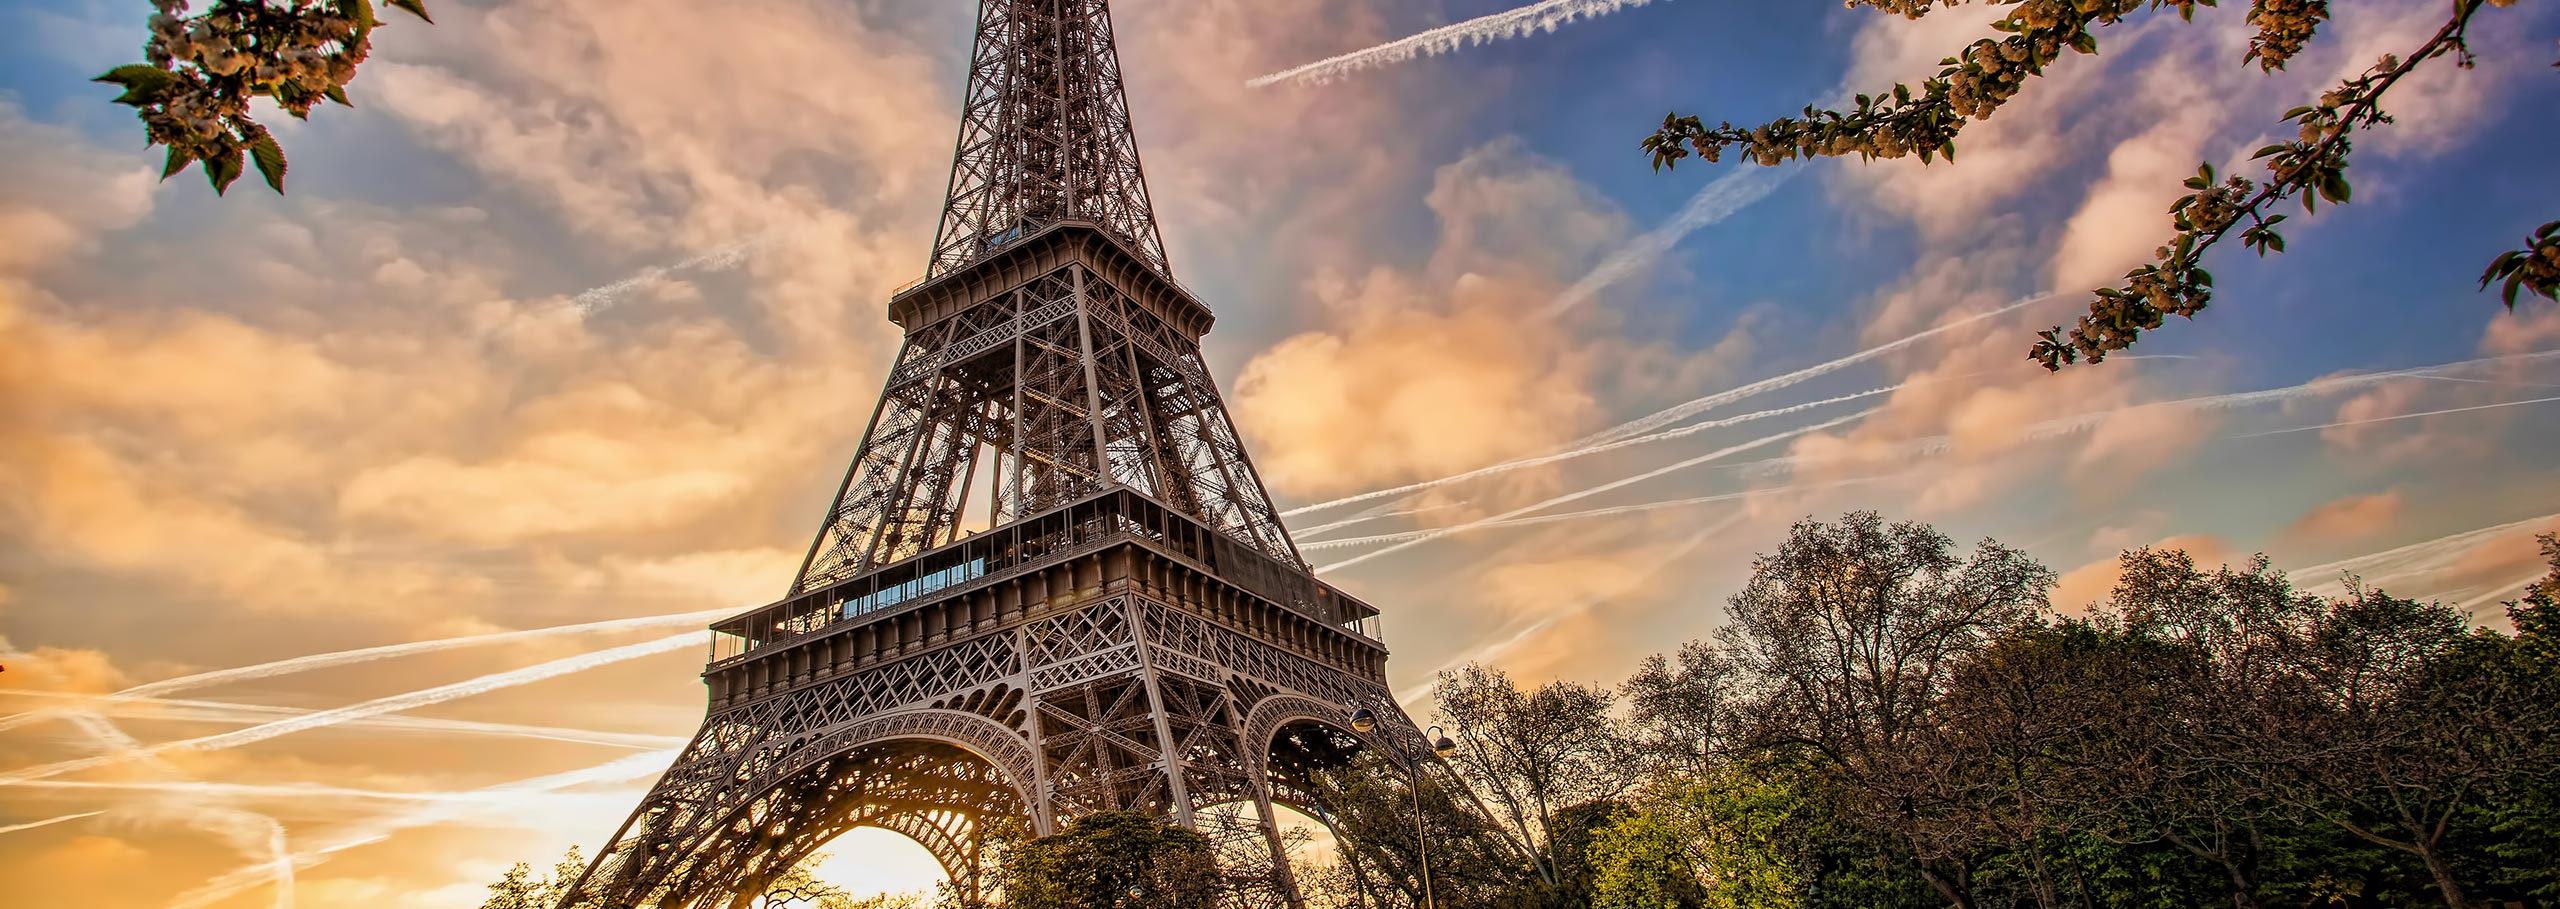 car hire rentals france eiffel tower